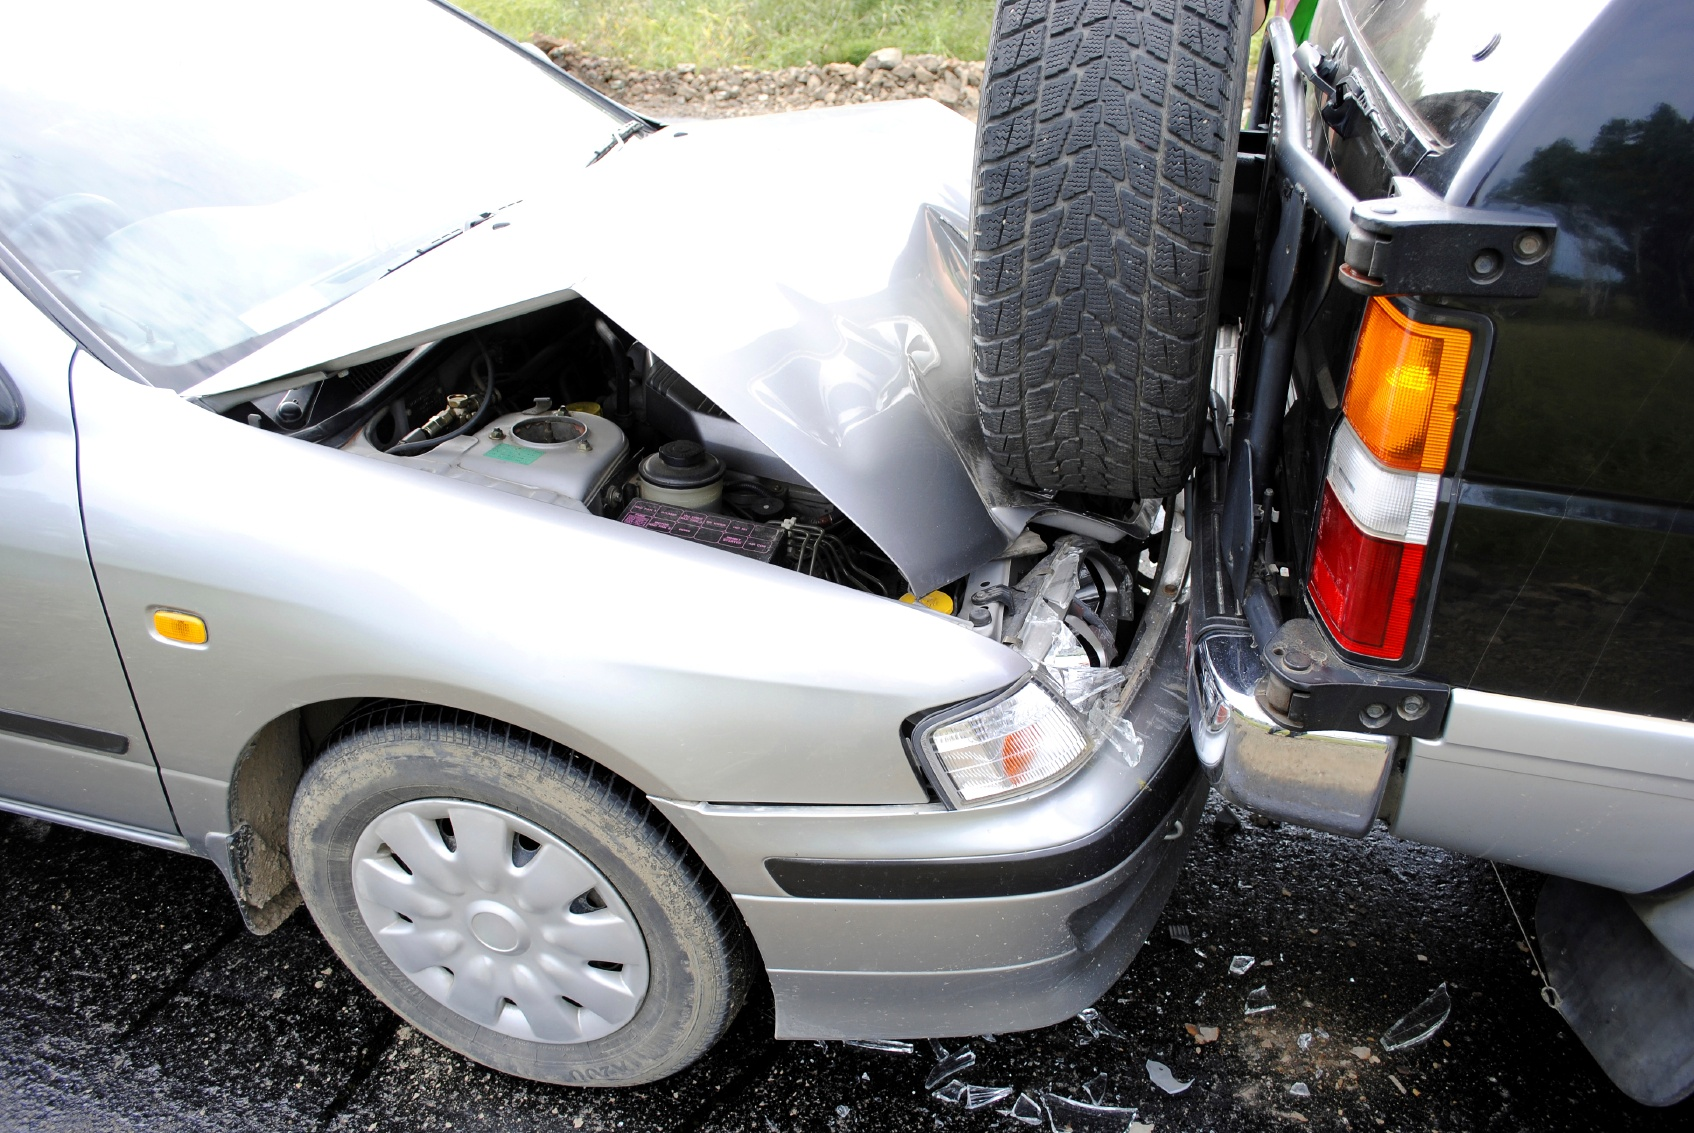 Car hit from behind causing damage and injuries